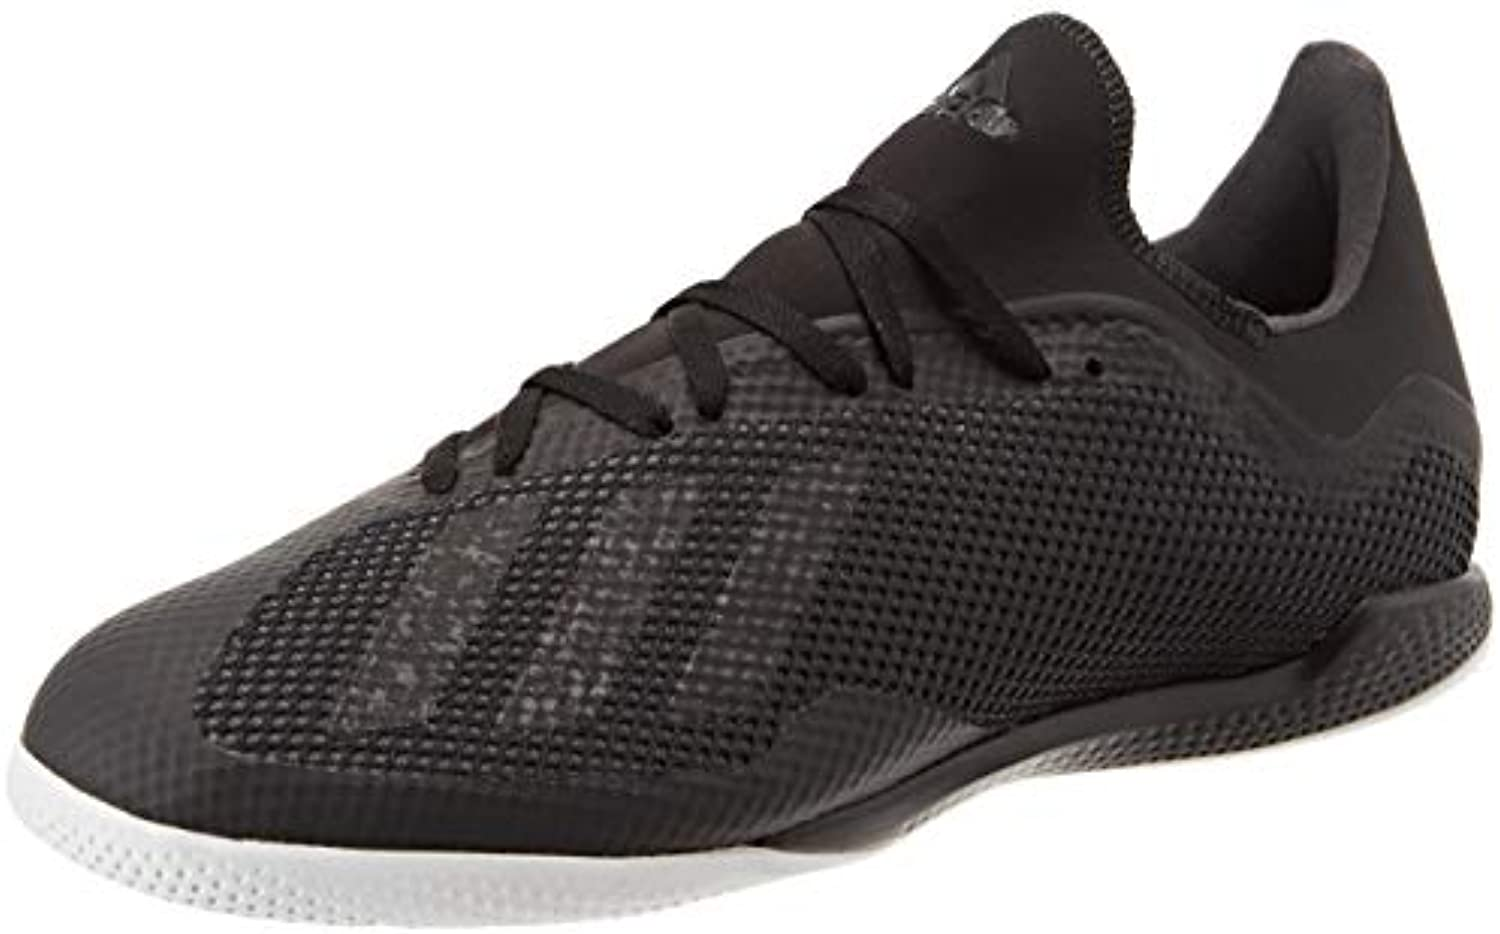 adidas hommes eacute; football chaussures de football eacute; le x tango 28d783